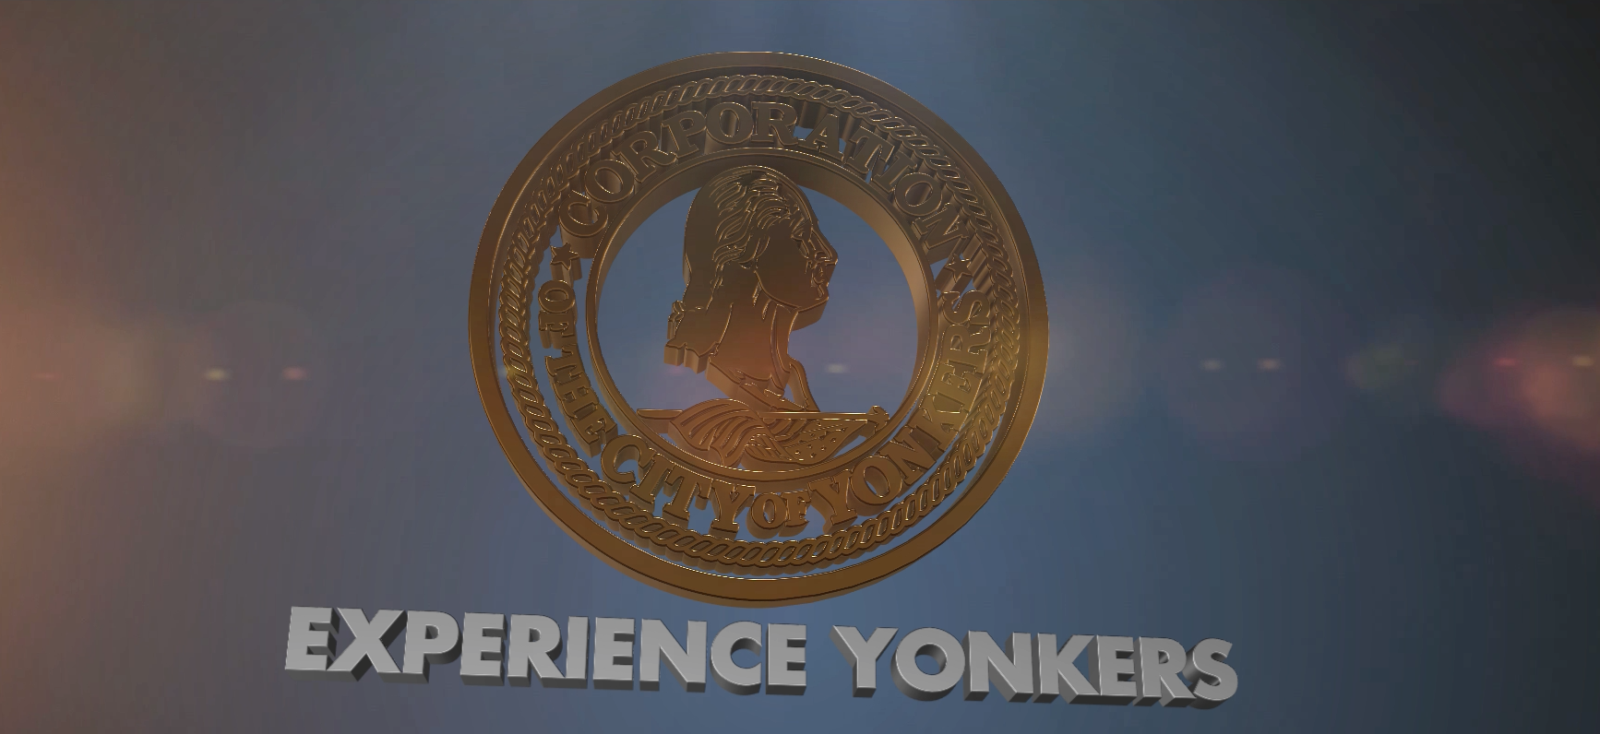 Experience Yonkers